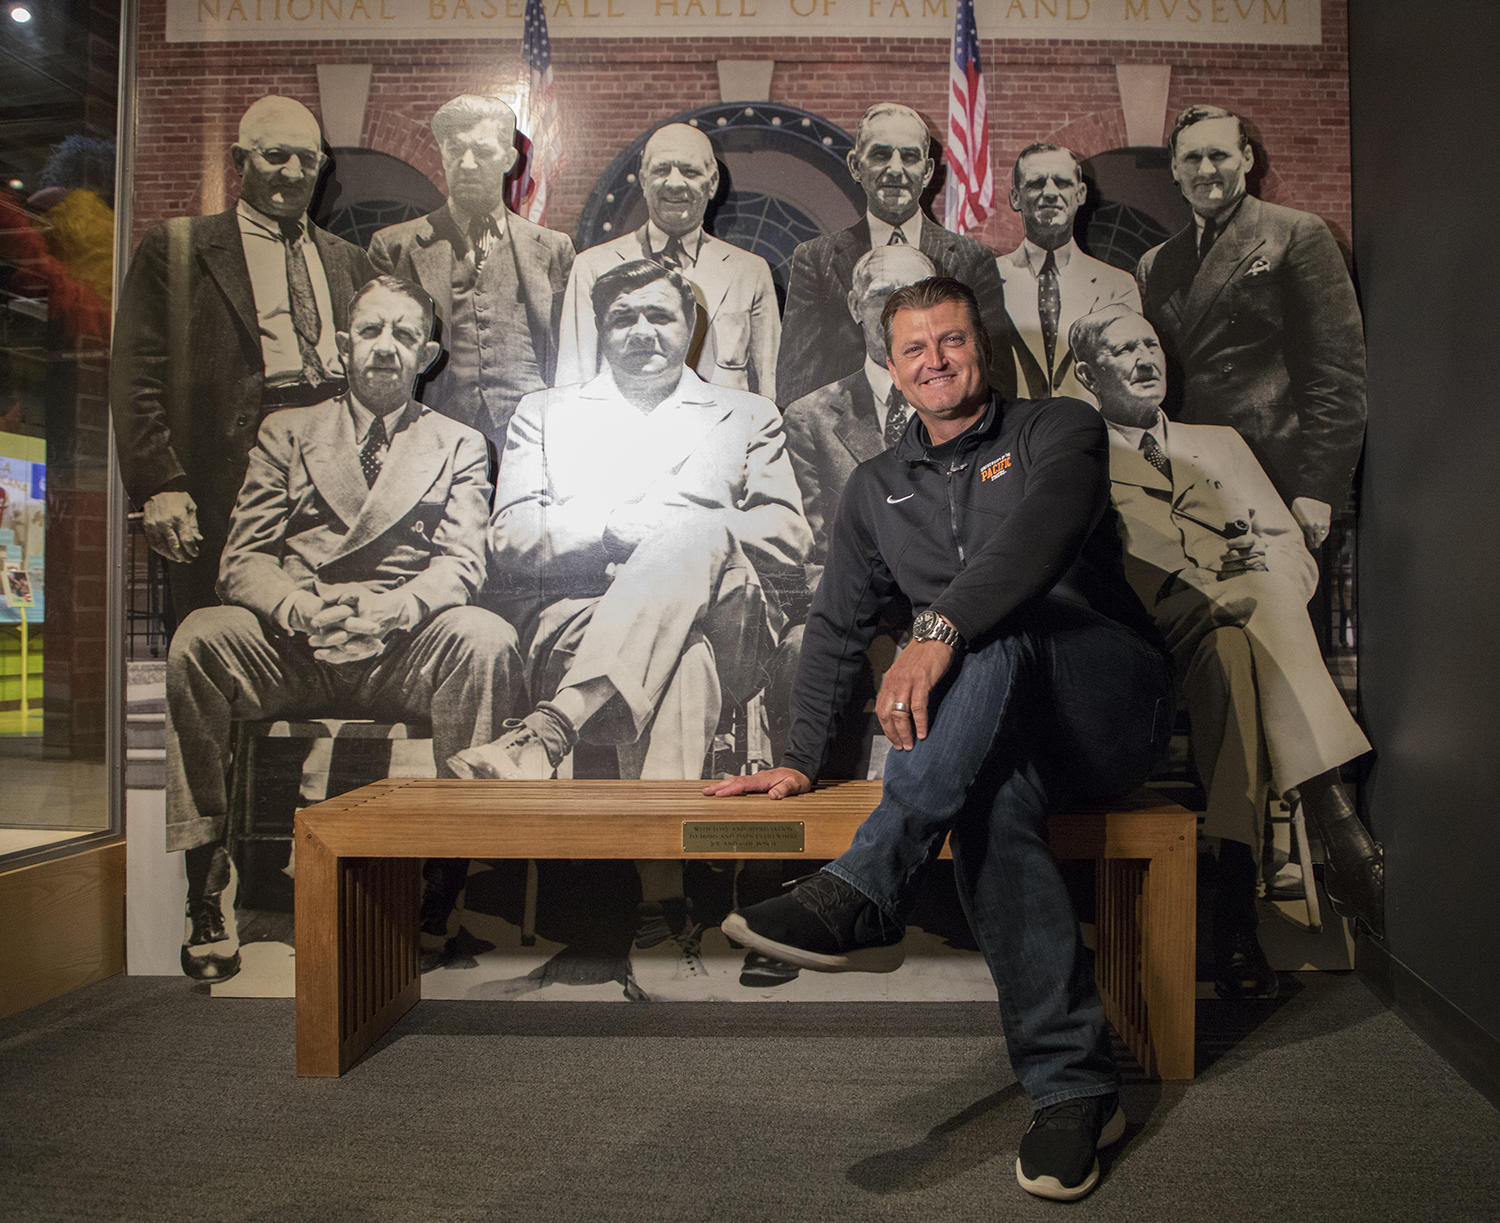 Trevor Hoffman sits in front of a photo taken of the first four classes of Hall of Famers on June 12, 1939, in Cooperstown. (Milo Stewart Jr./National Baseball Hall of Fame and Museum)